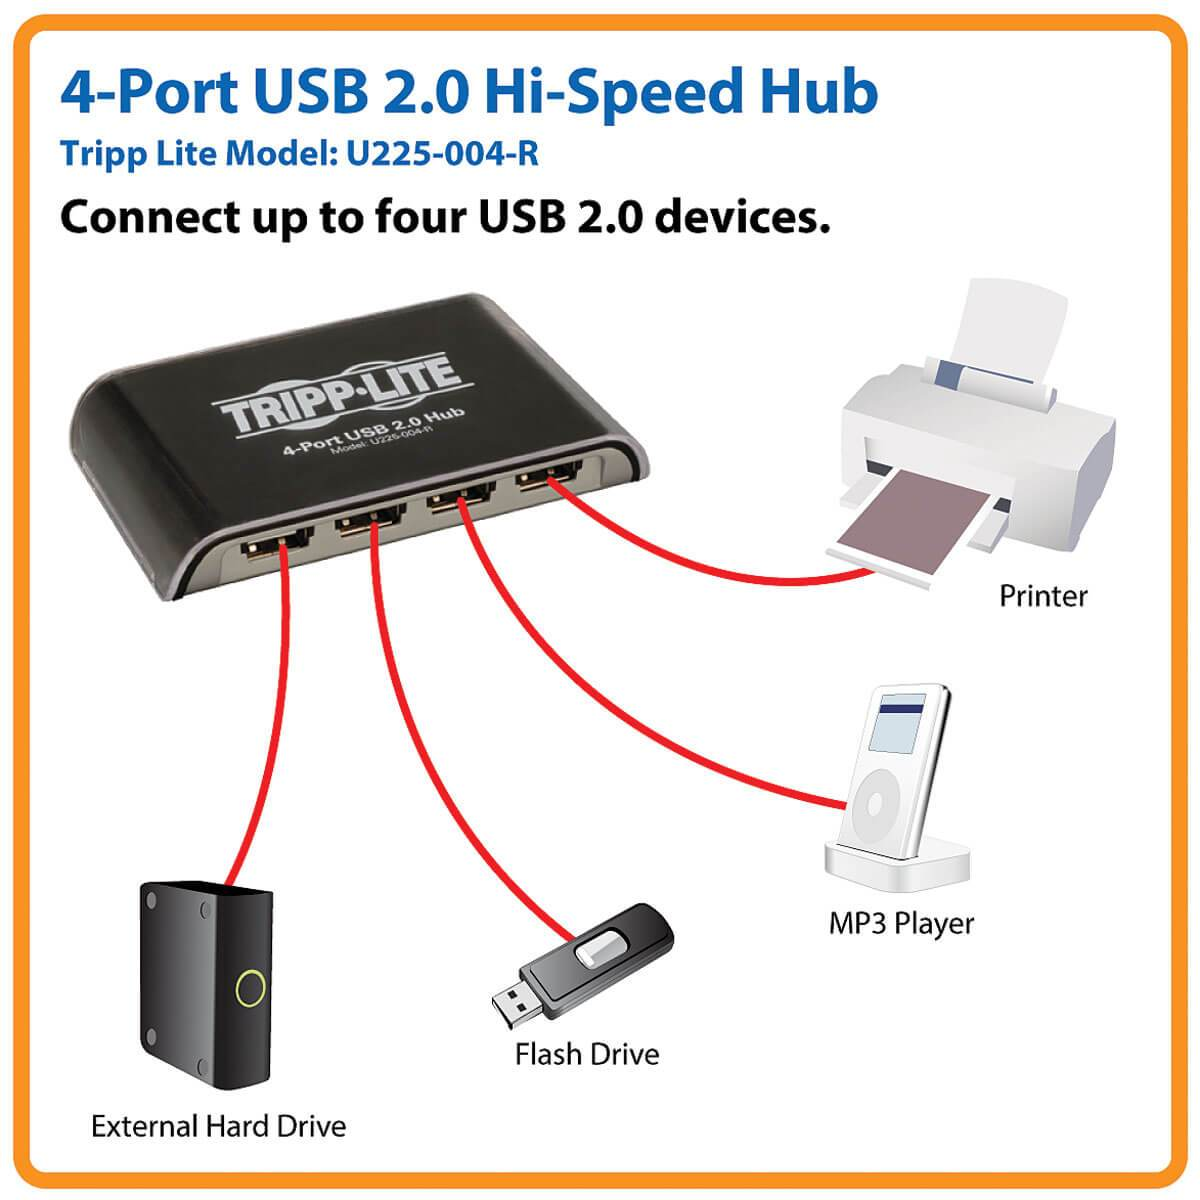 Tripp Lite 4-Port Desktop Hi-Speed USB 2.0 USB 1.1 Hub 480Mbps 4ft Cable